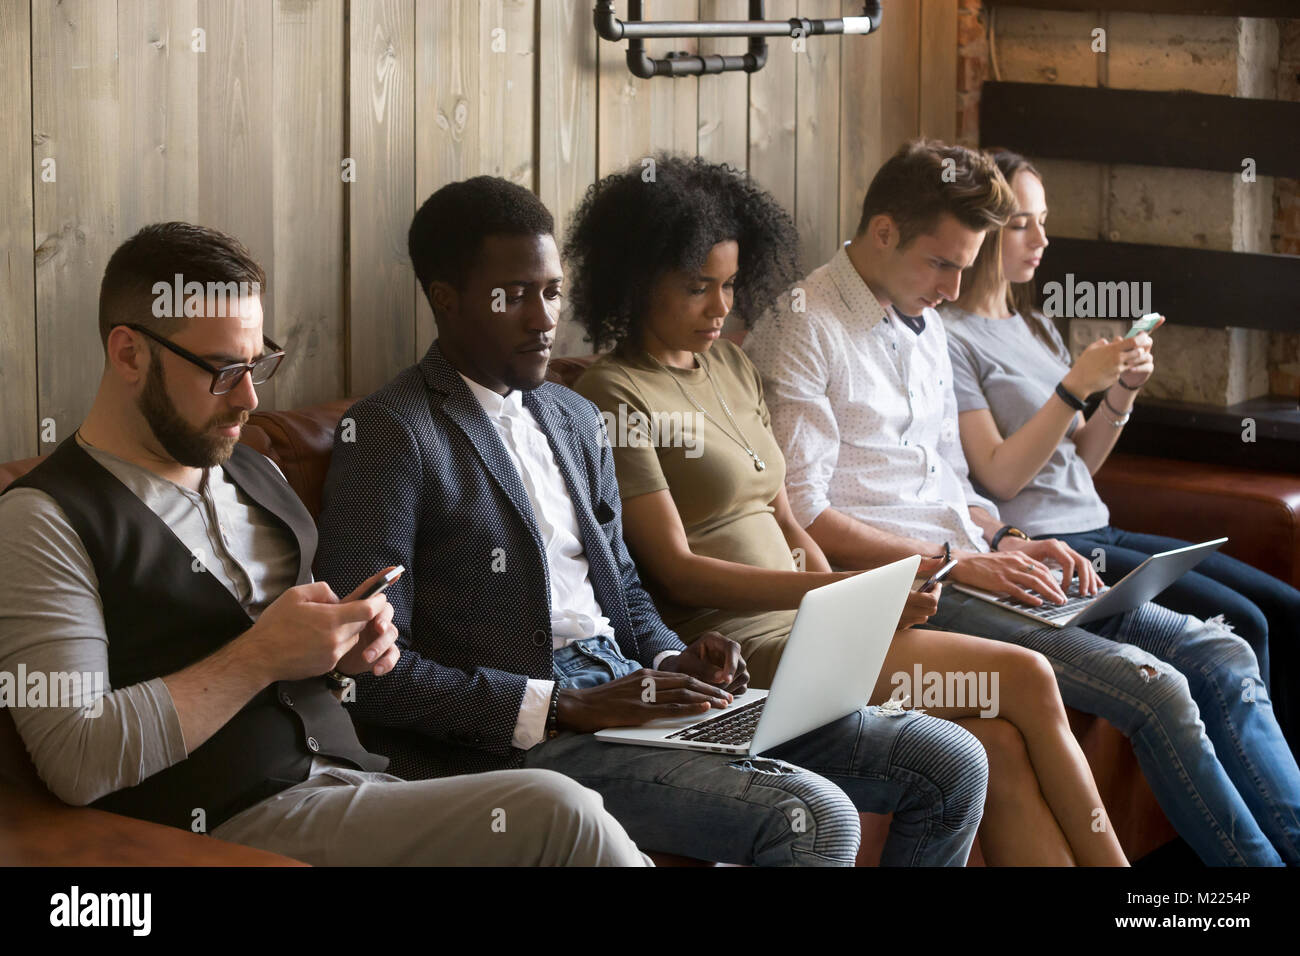 Multiracial black and white people sitting on couch using device - Stock Image